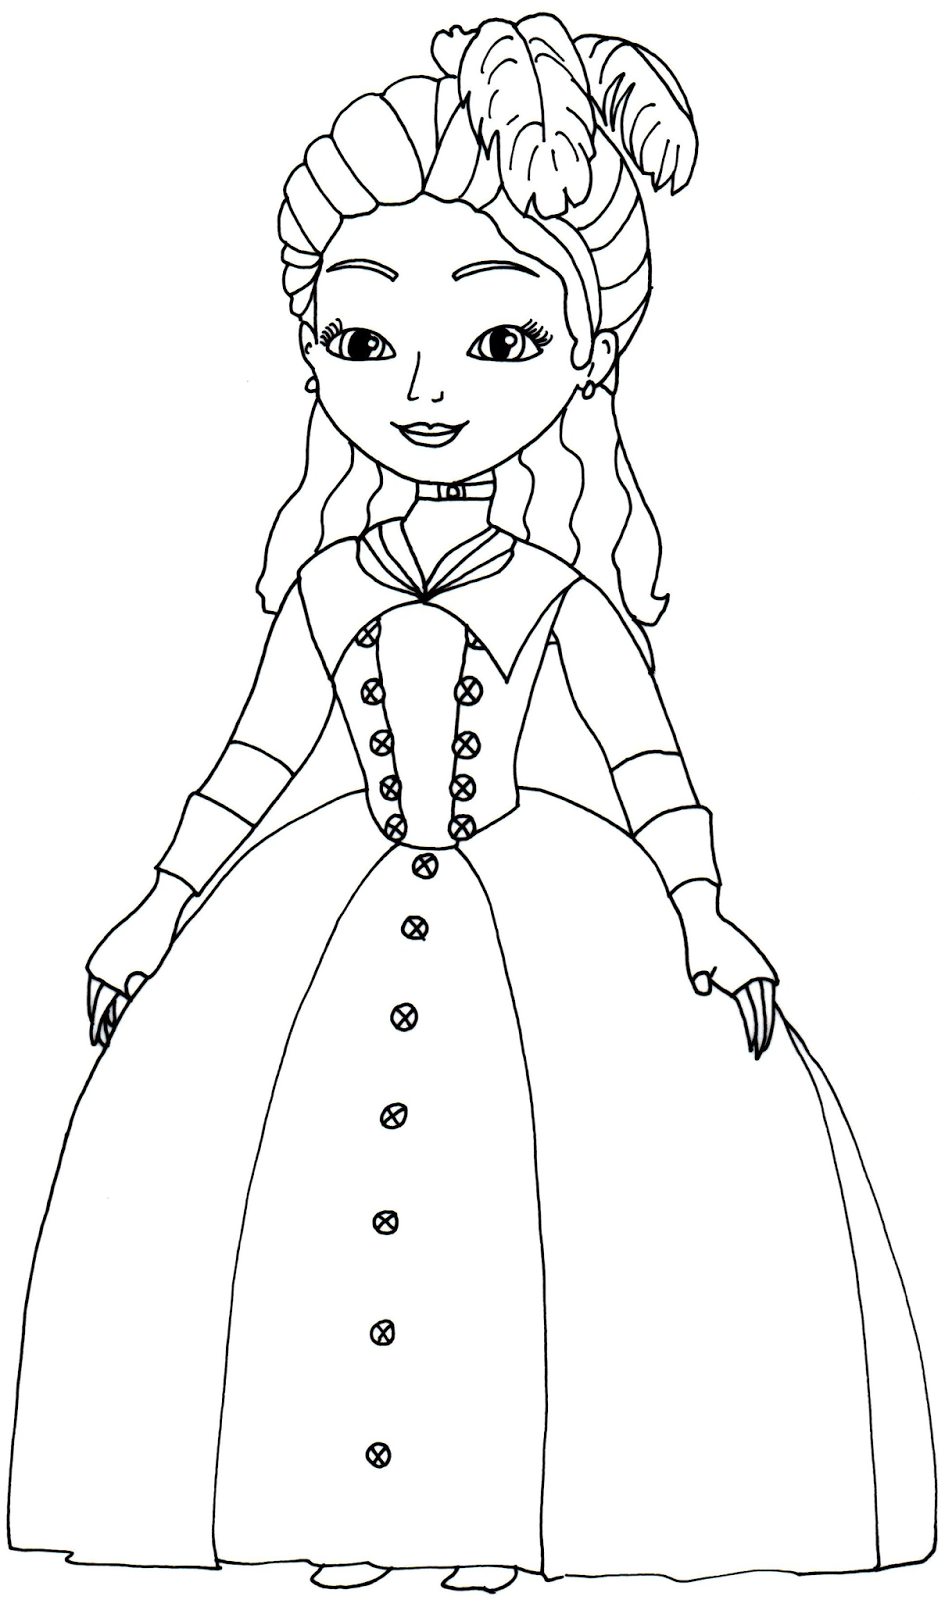 sofia the first coloring pages princess clio sofia the first